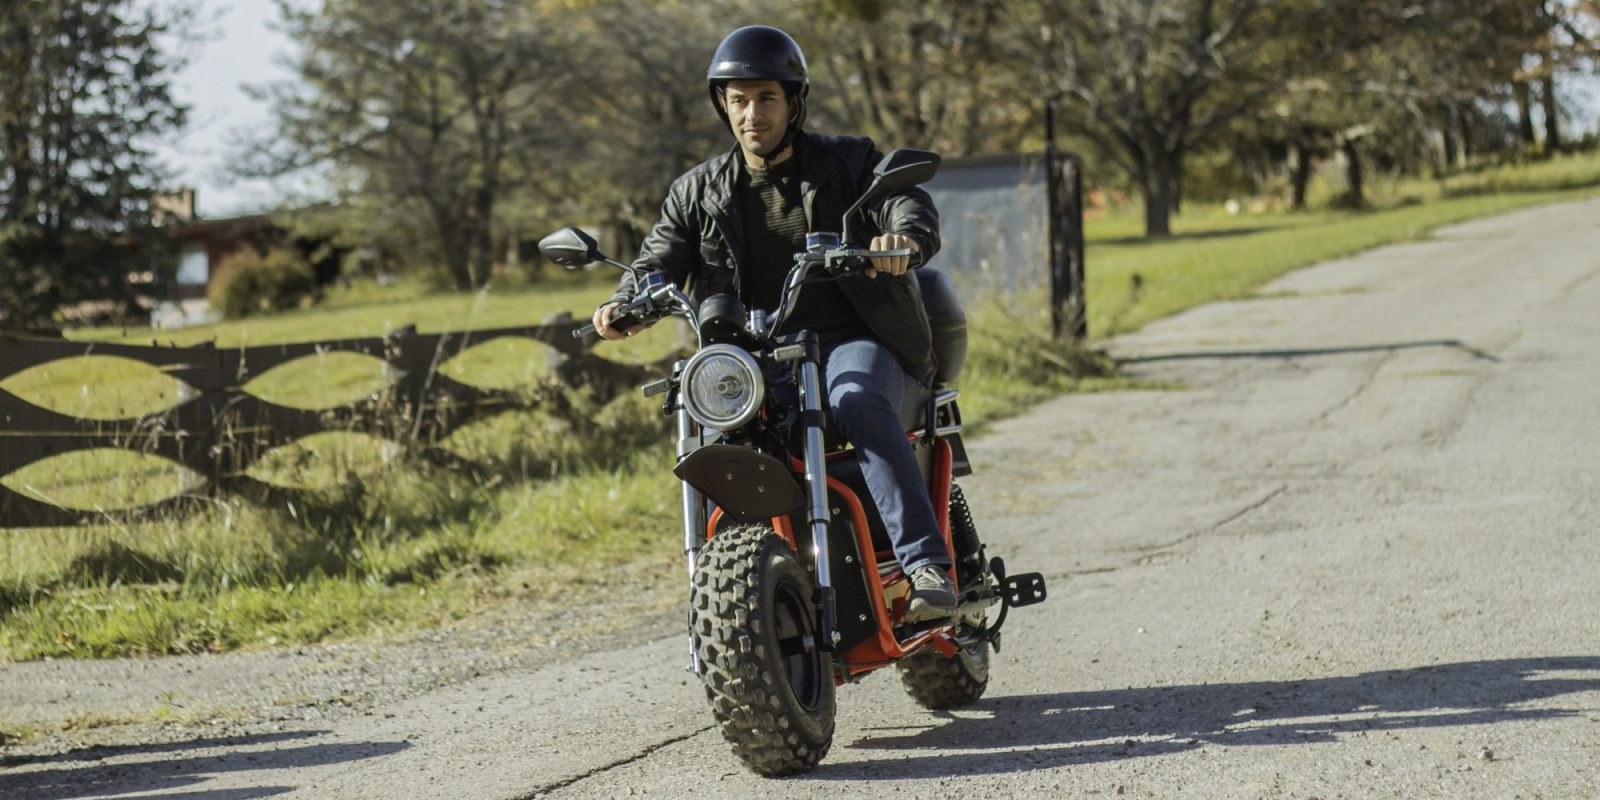 The Beast 2.0 e-bike is the monster truck of electric bicycles